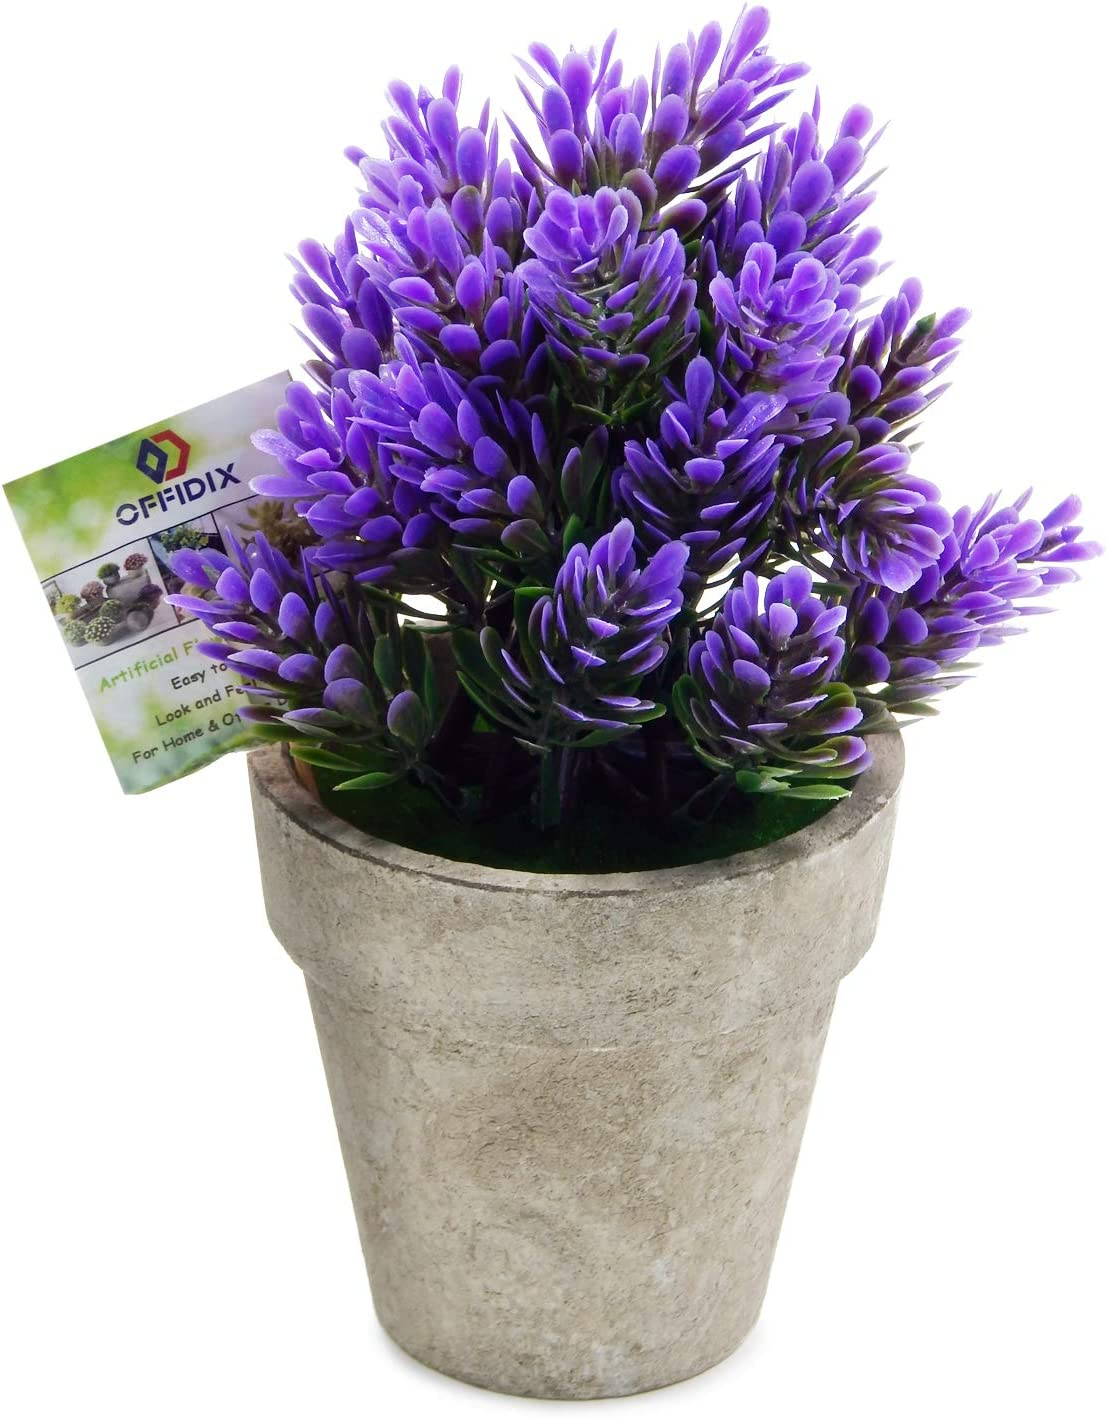 OFFIDIX Mini Artificial Lavender Flowers Potted Plant Desktop Plant Fake Plants with Gray Pot for Home Office Cafe Desktop Decoration (Purple)